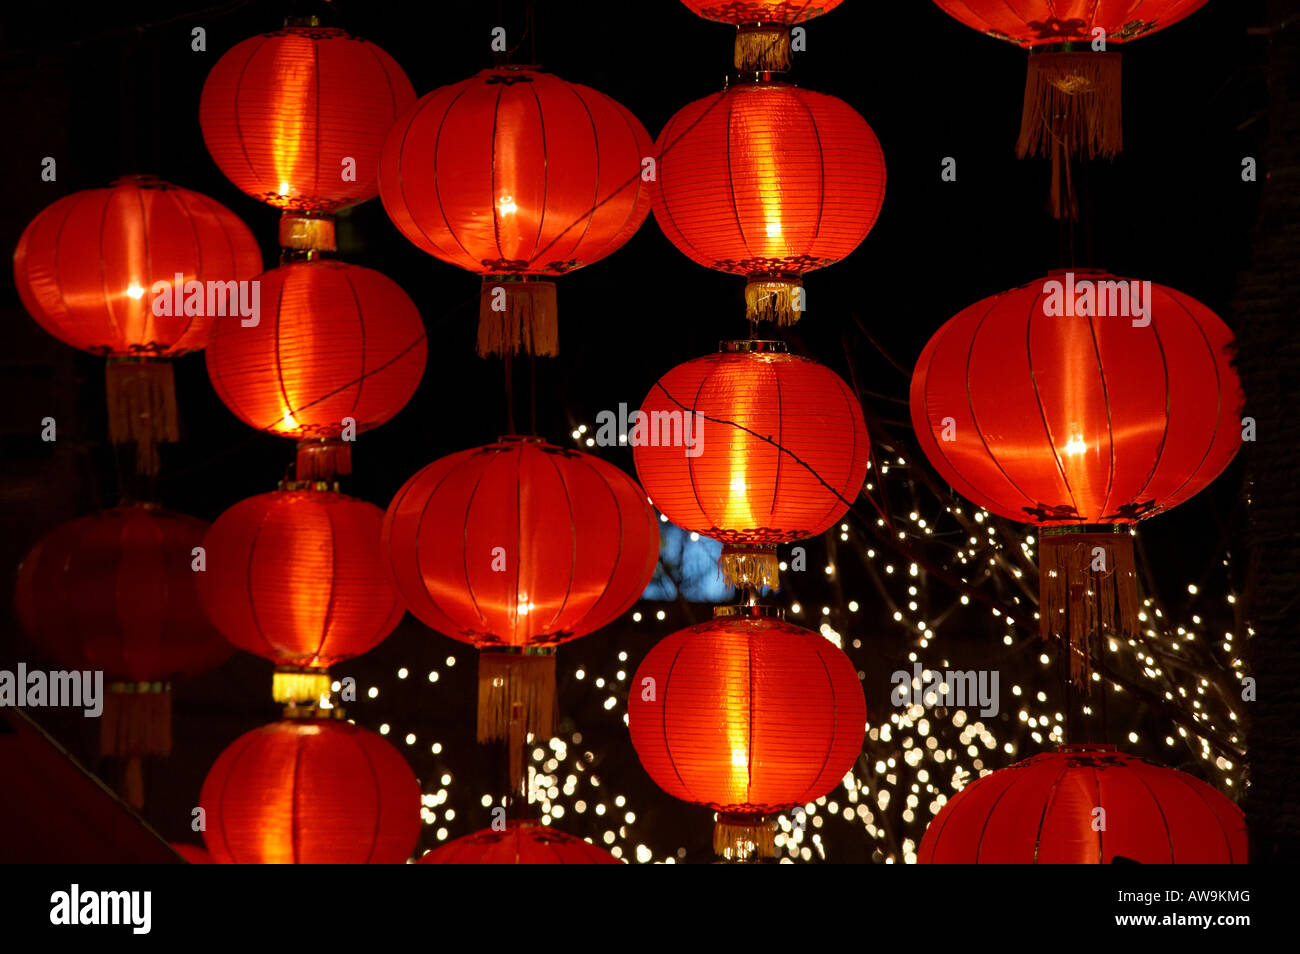 Chinese New Year Red Lantern Festival Celebrations In Shanghai China Asia Night Light Lit Up Decorations